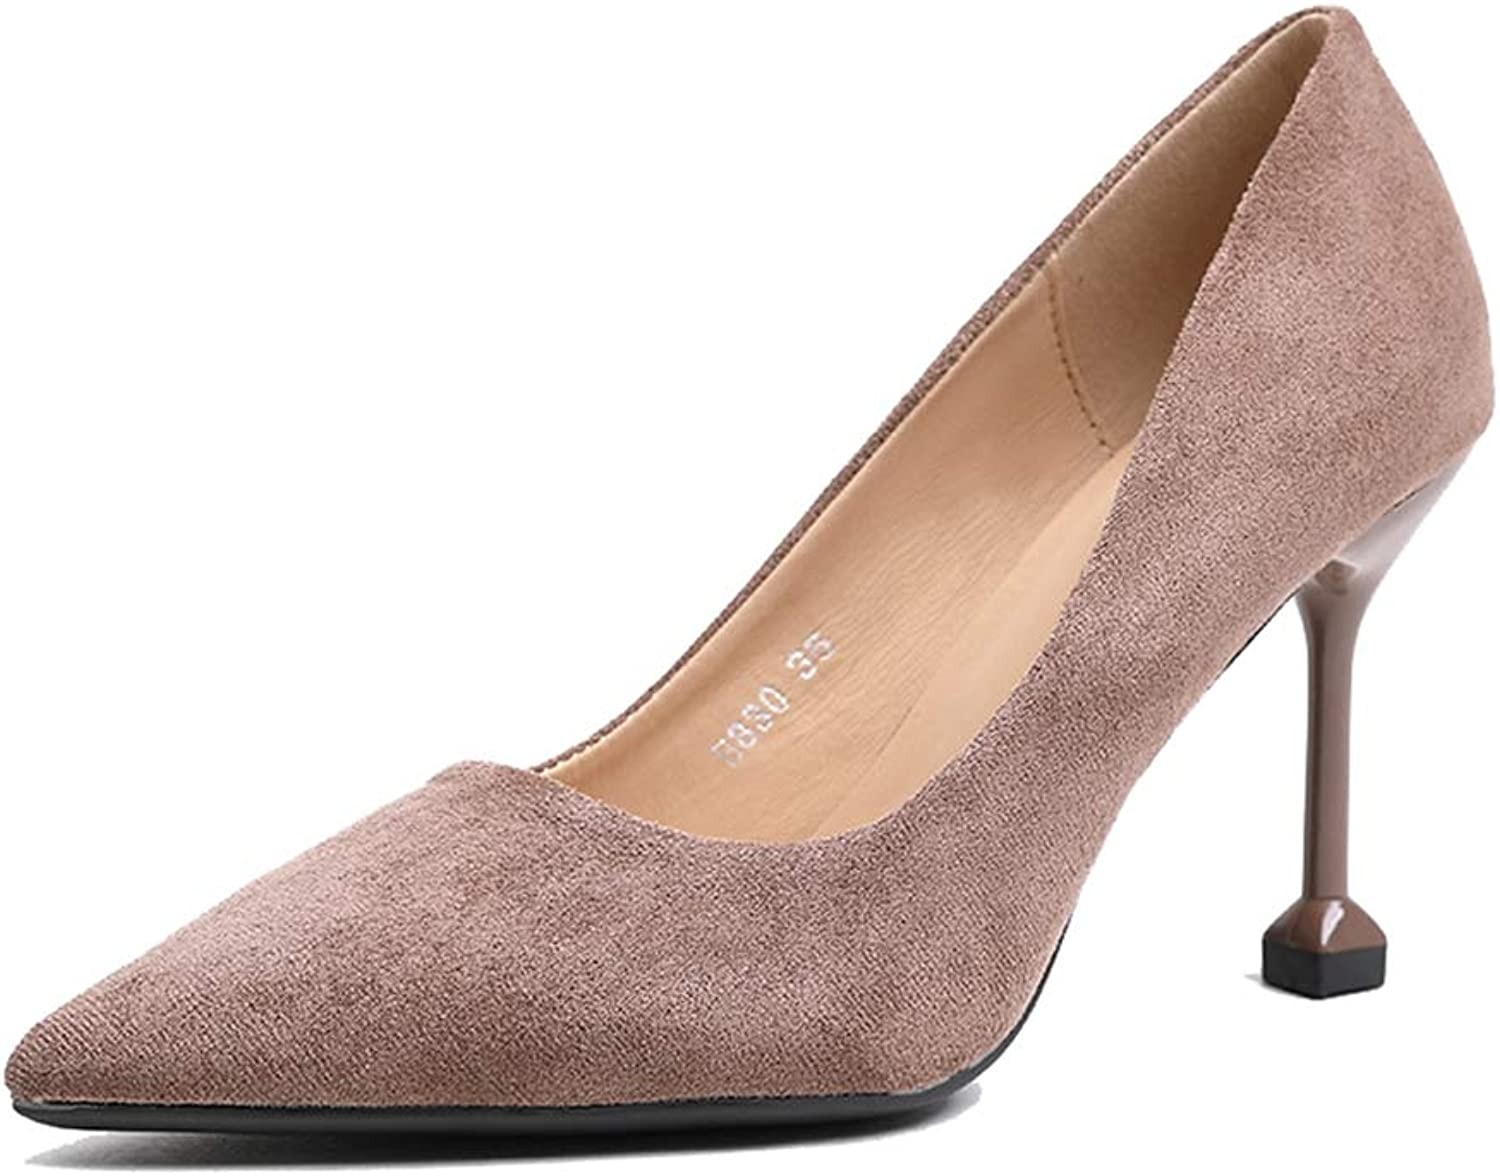 Sam Carle Women's Pumps,Simple Solid color Comfortable Non-Slip Sexy Office shoes